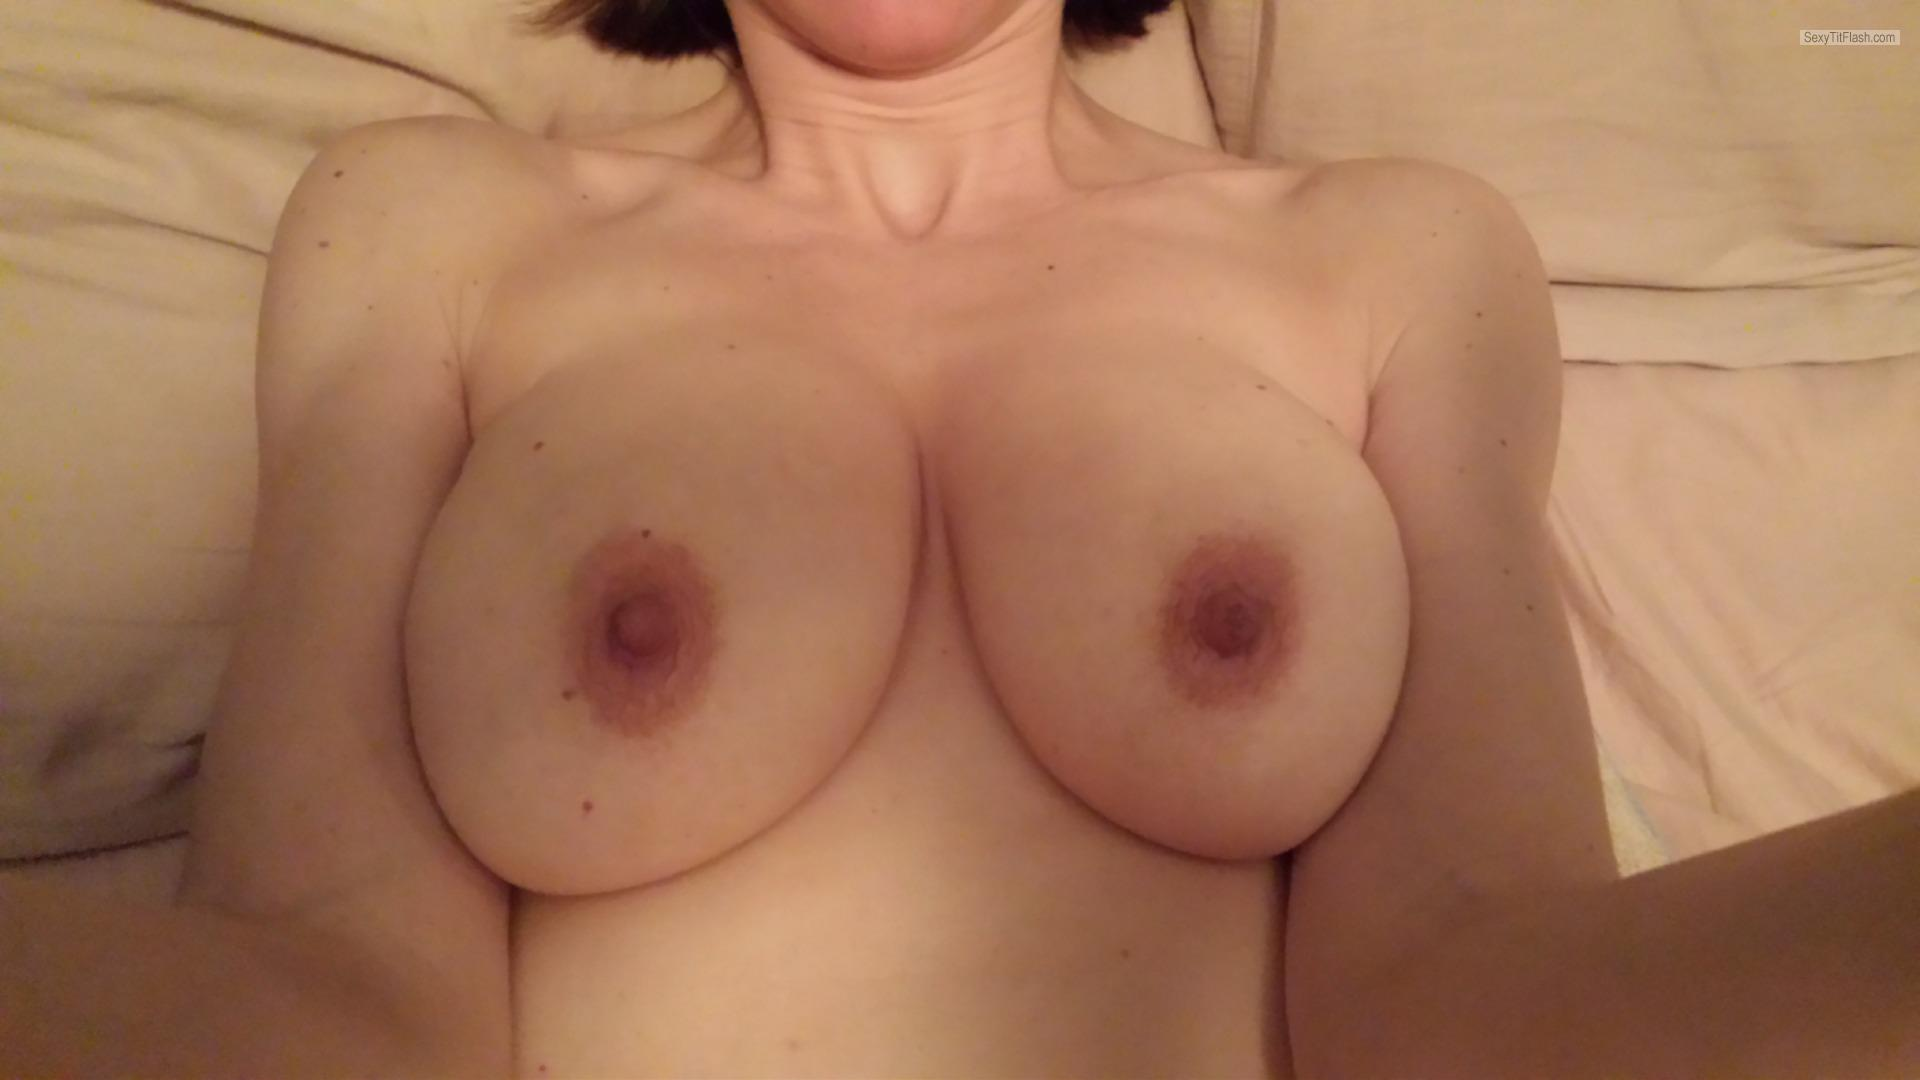 Tit Flash: My Big Tits (Selfie) - Jenny from Canada